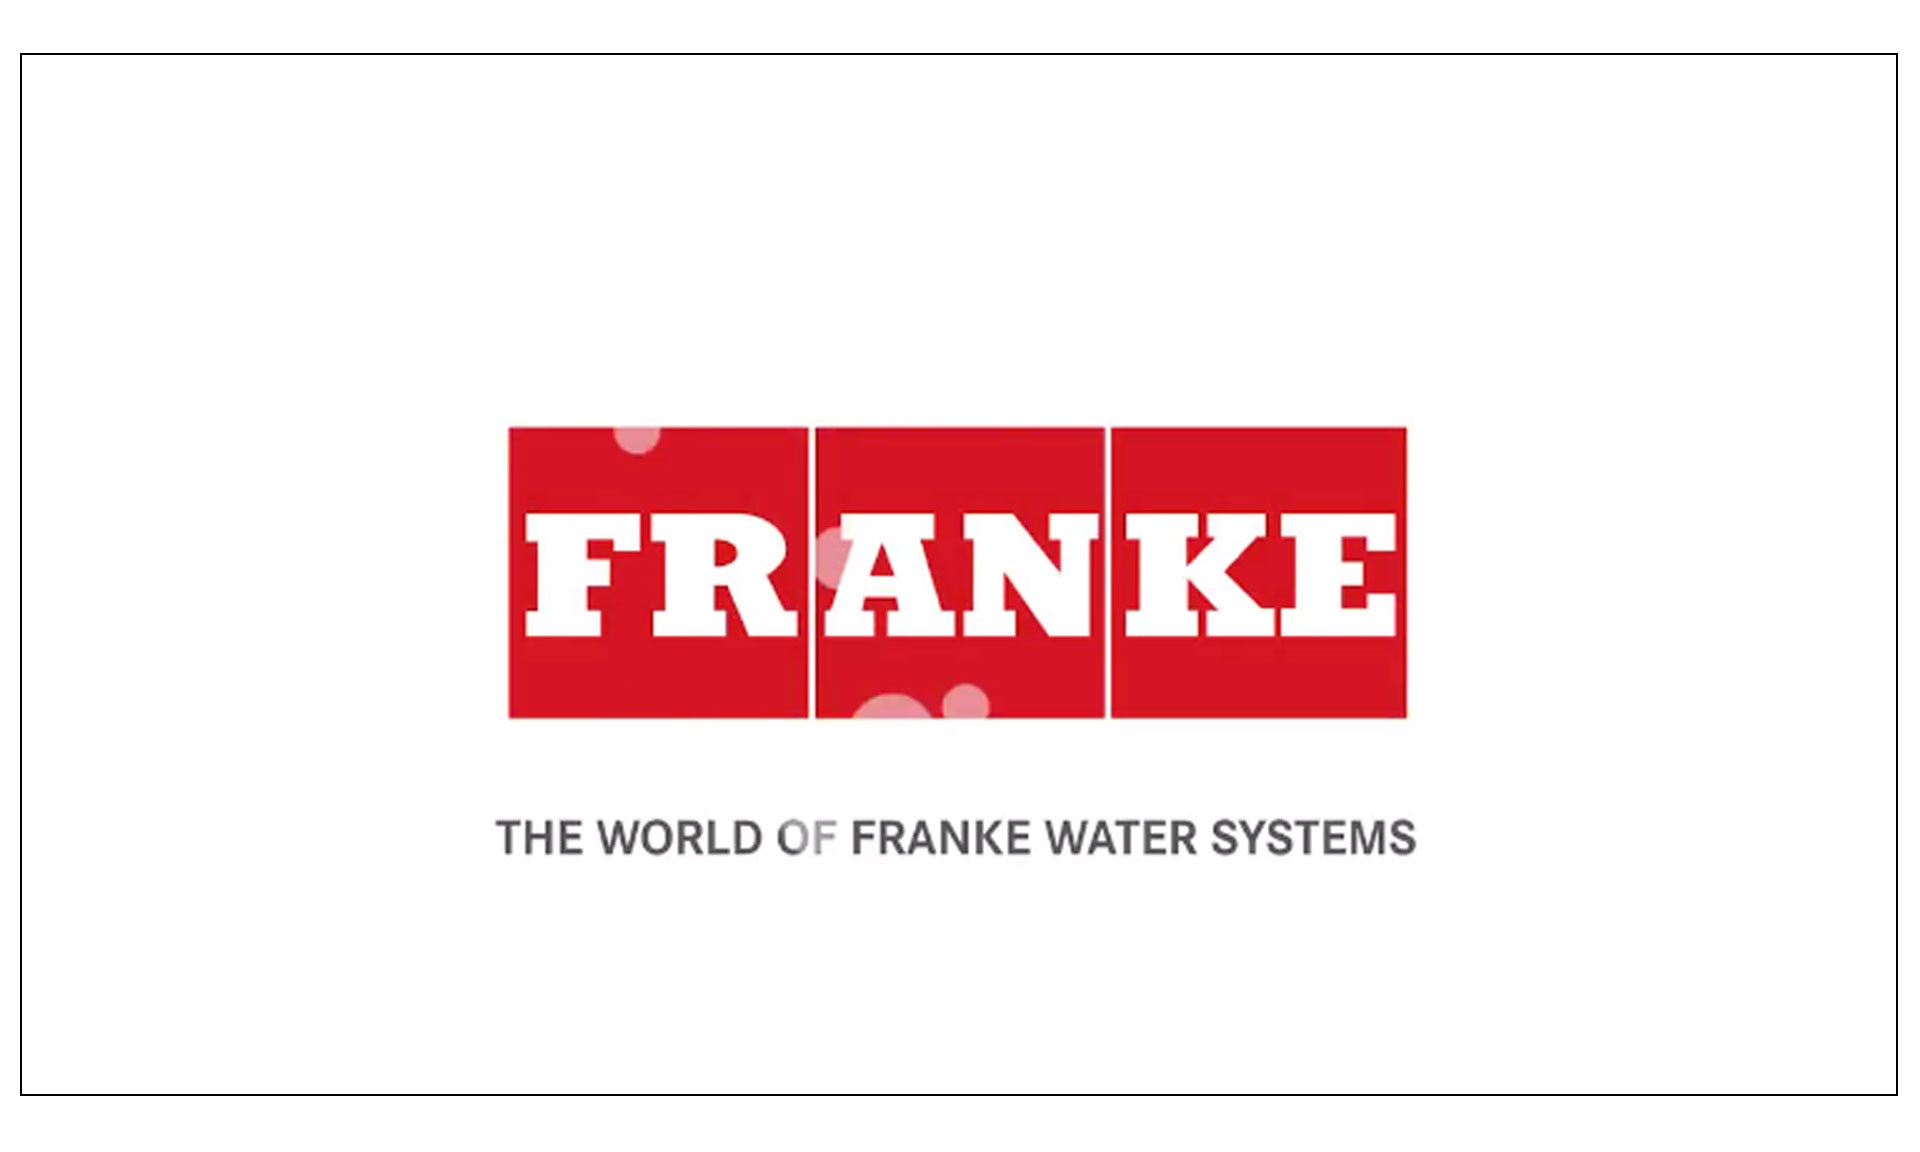 World of Franke Water Systems